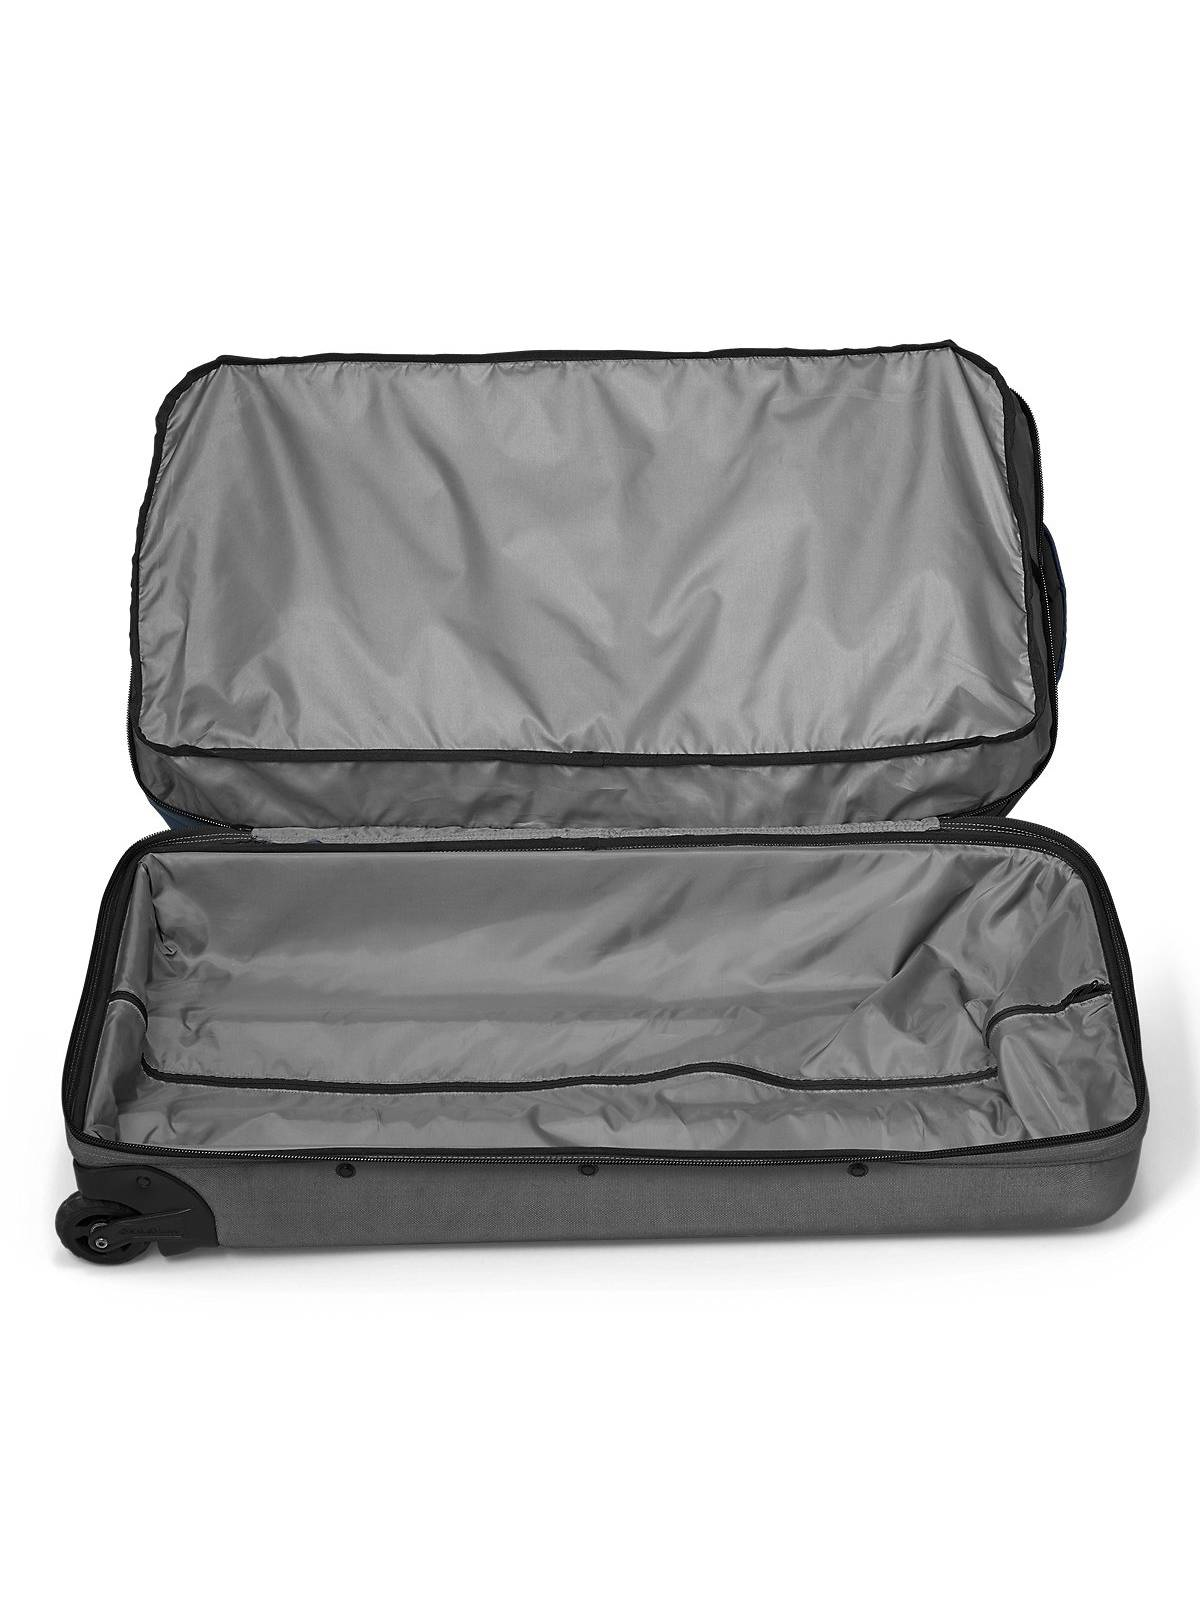 Eddie Bauer Unisexadult Expedition Drop Bottom Rolling Duffel XXL ... 65edc3110b